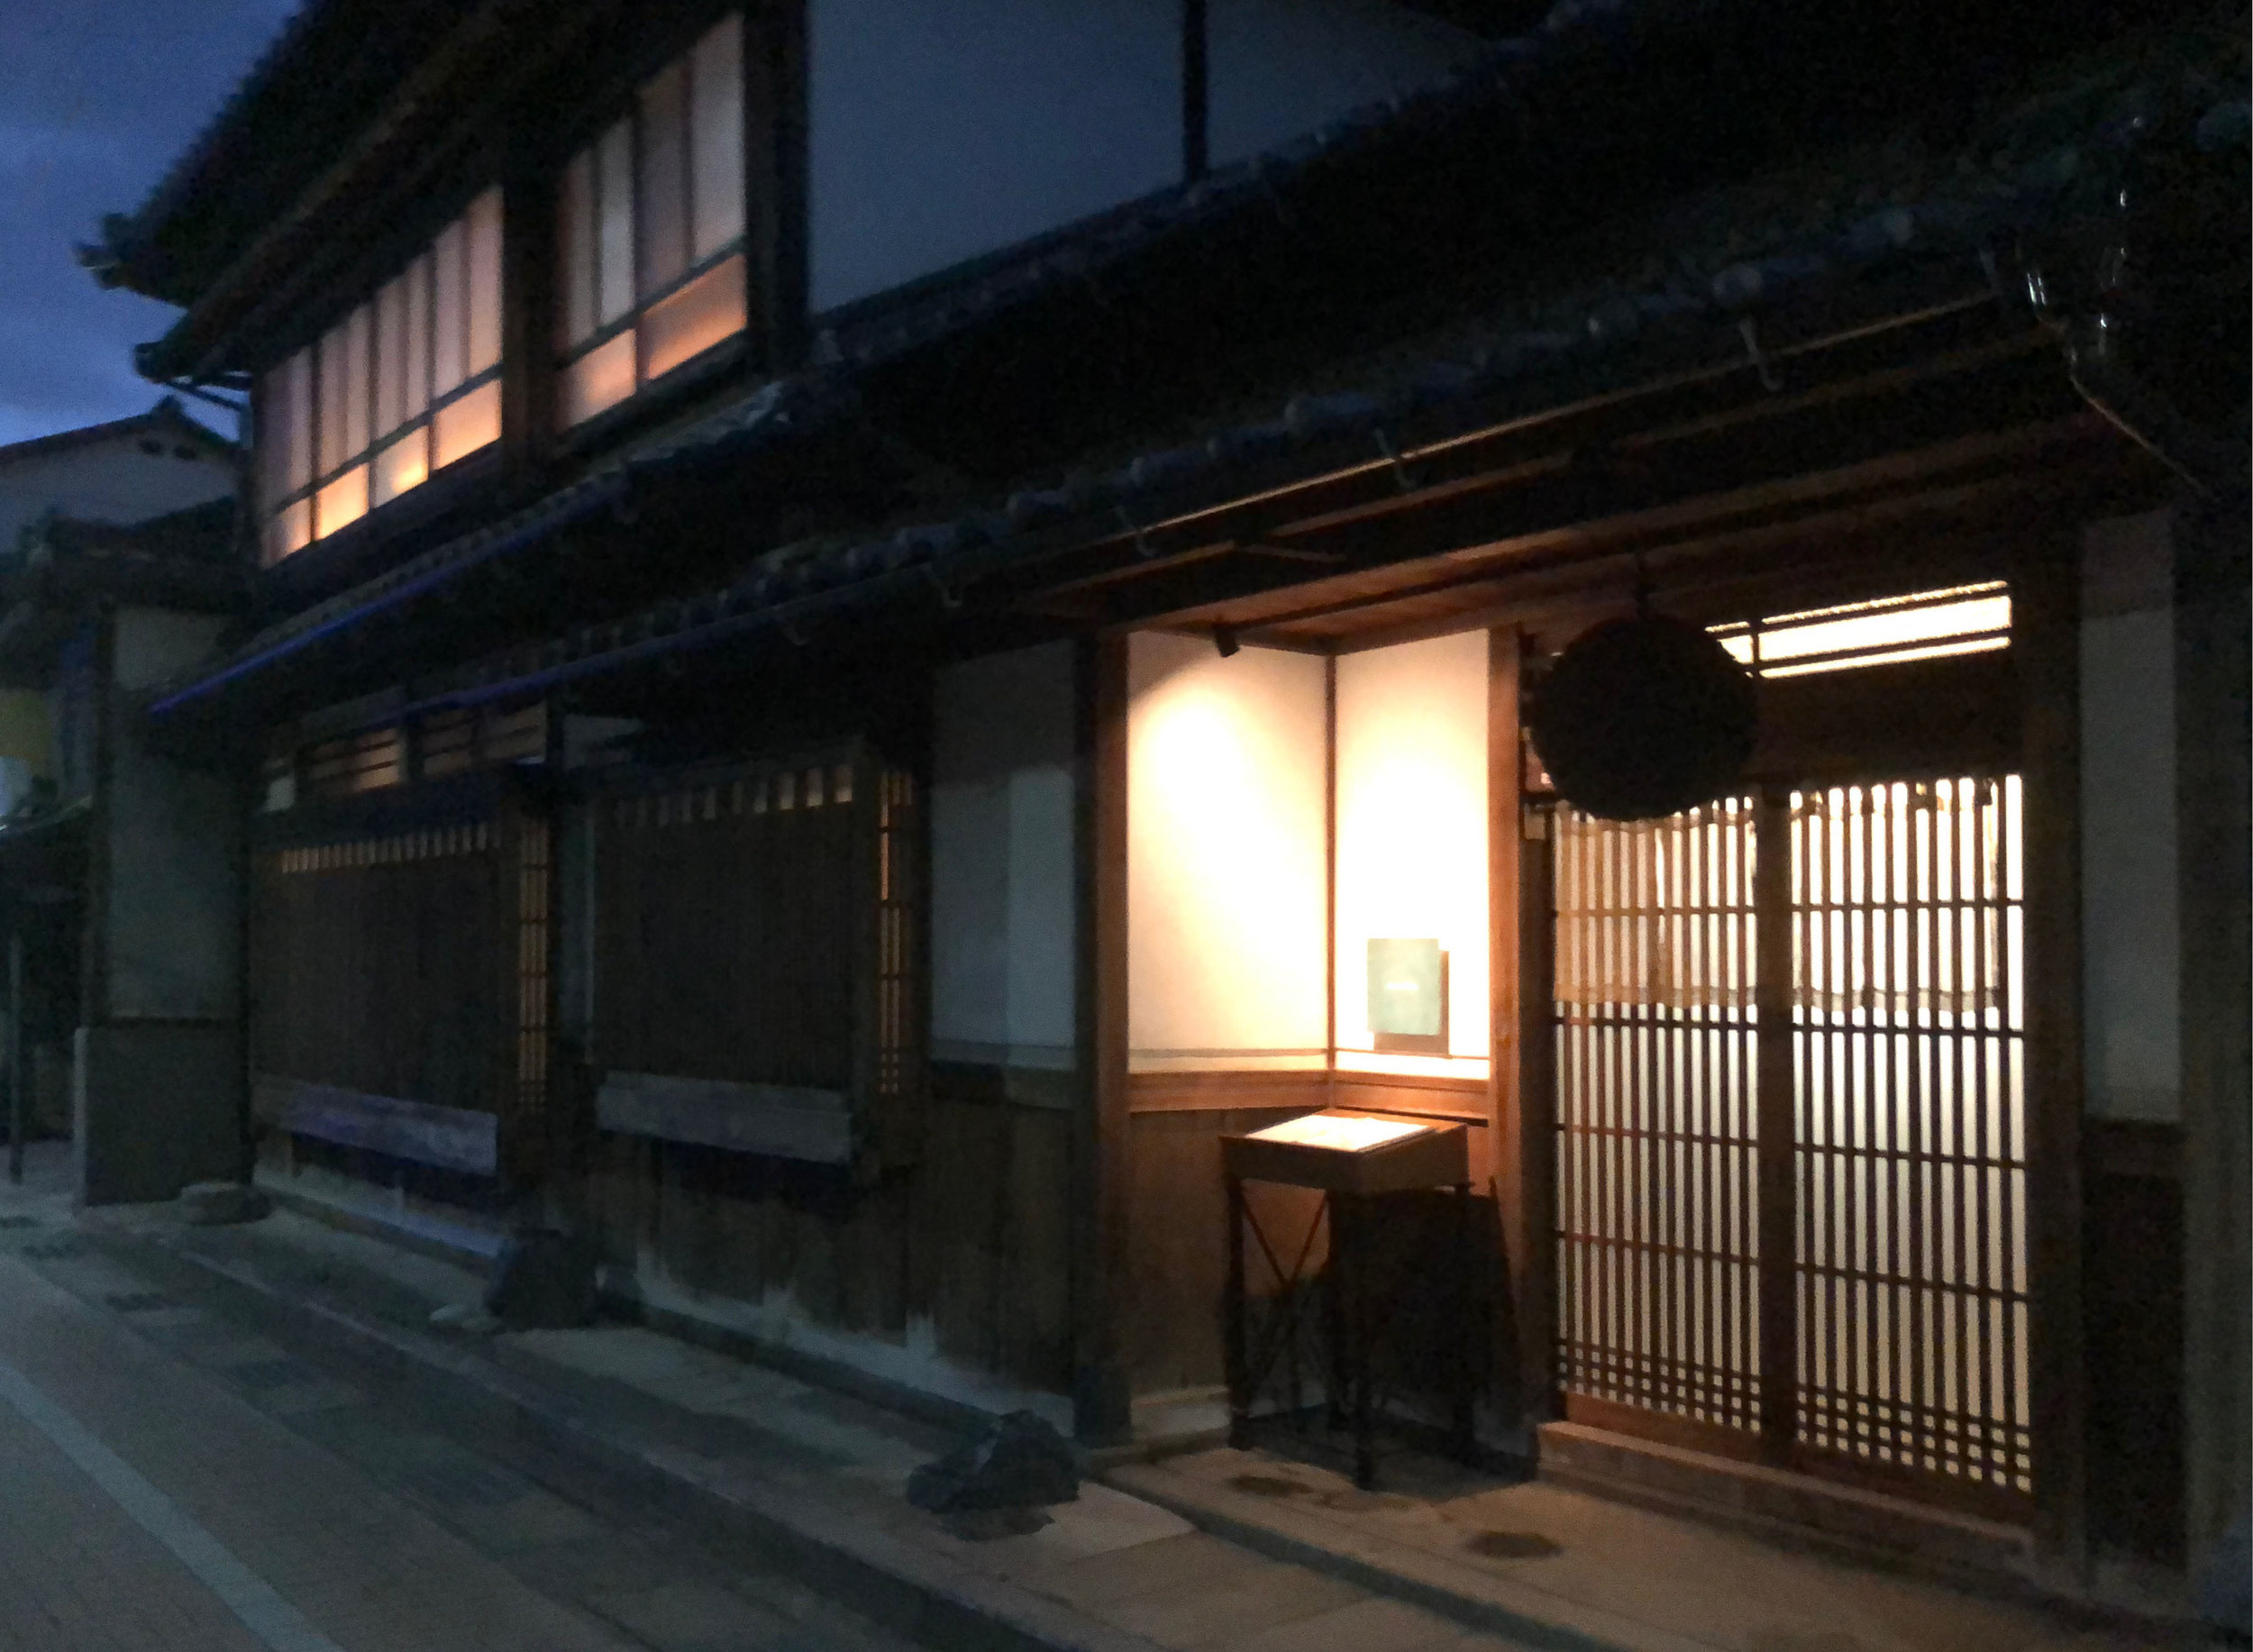 Aceto is housed in a handsomely renovated, 120-year old ochaya (geisha tea house) located in the old entertainment district of the port of Miyazu.